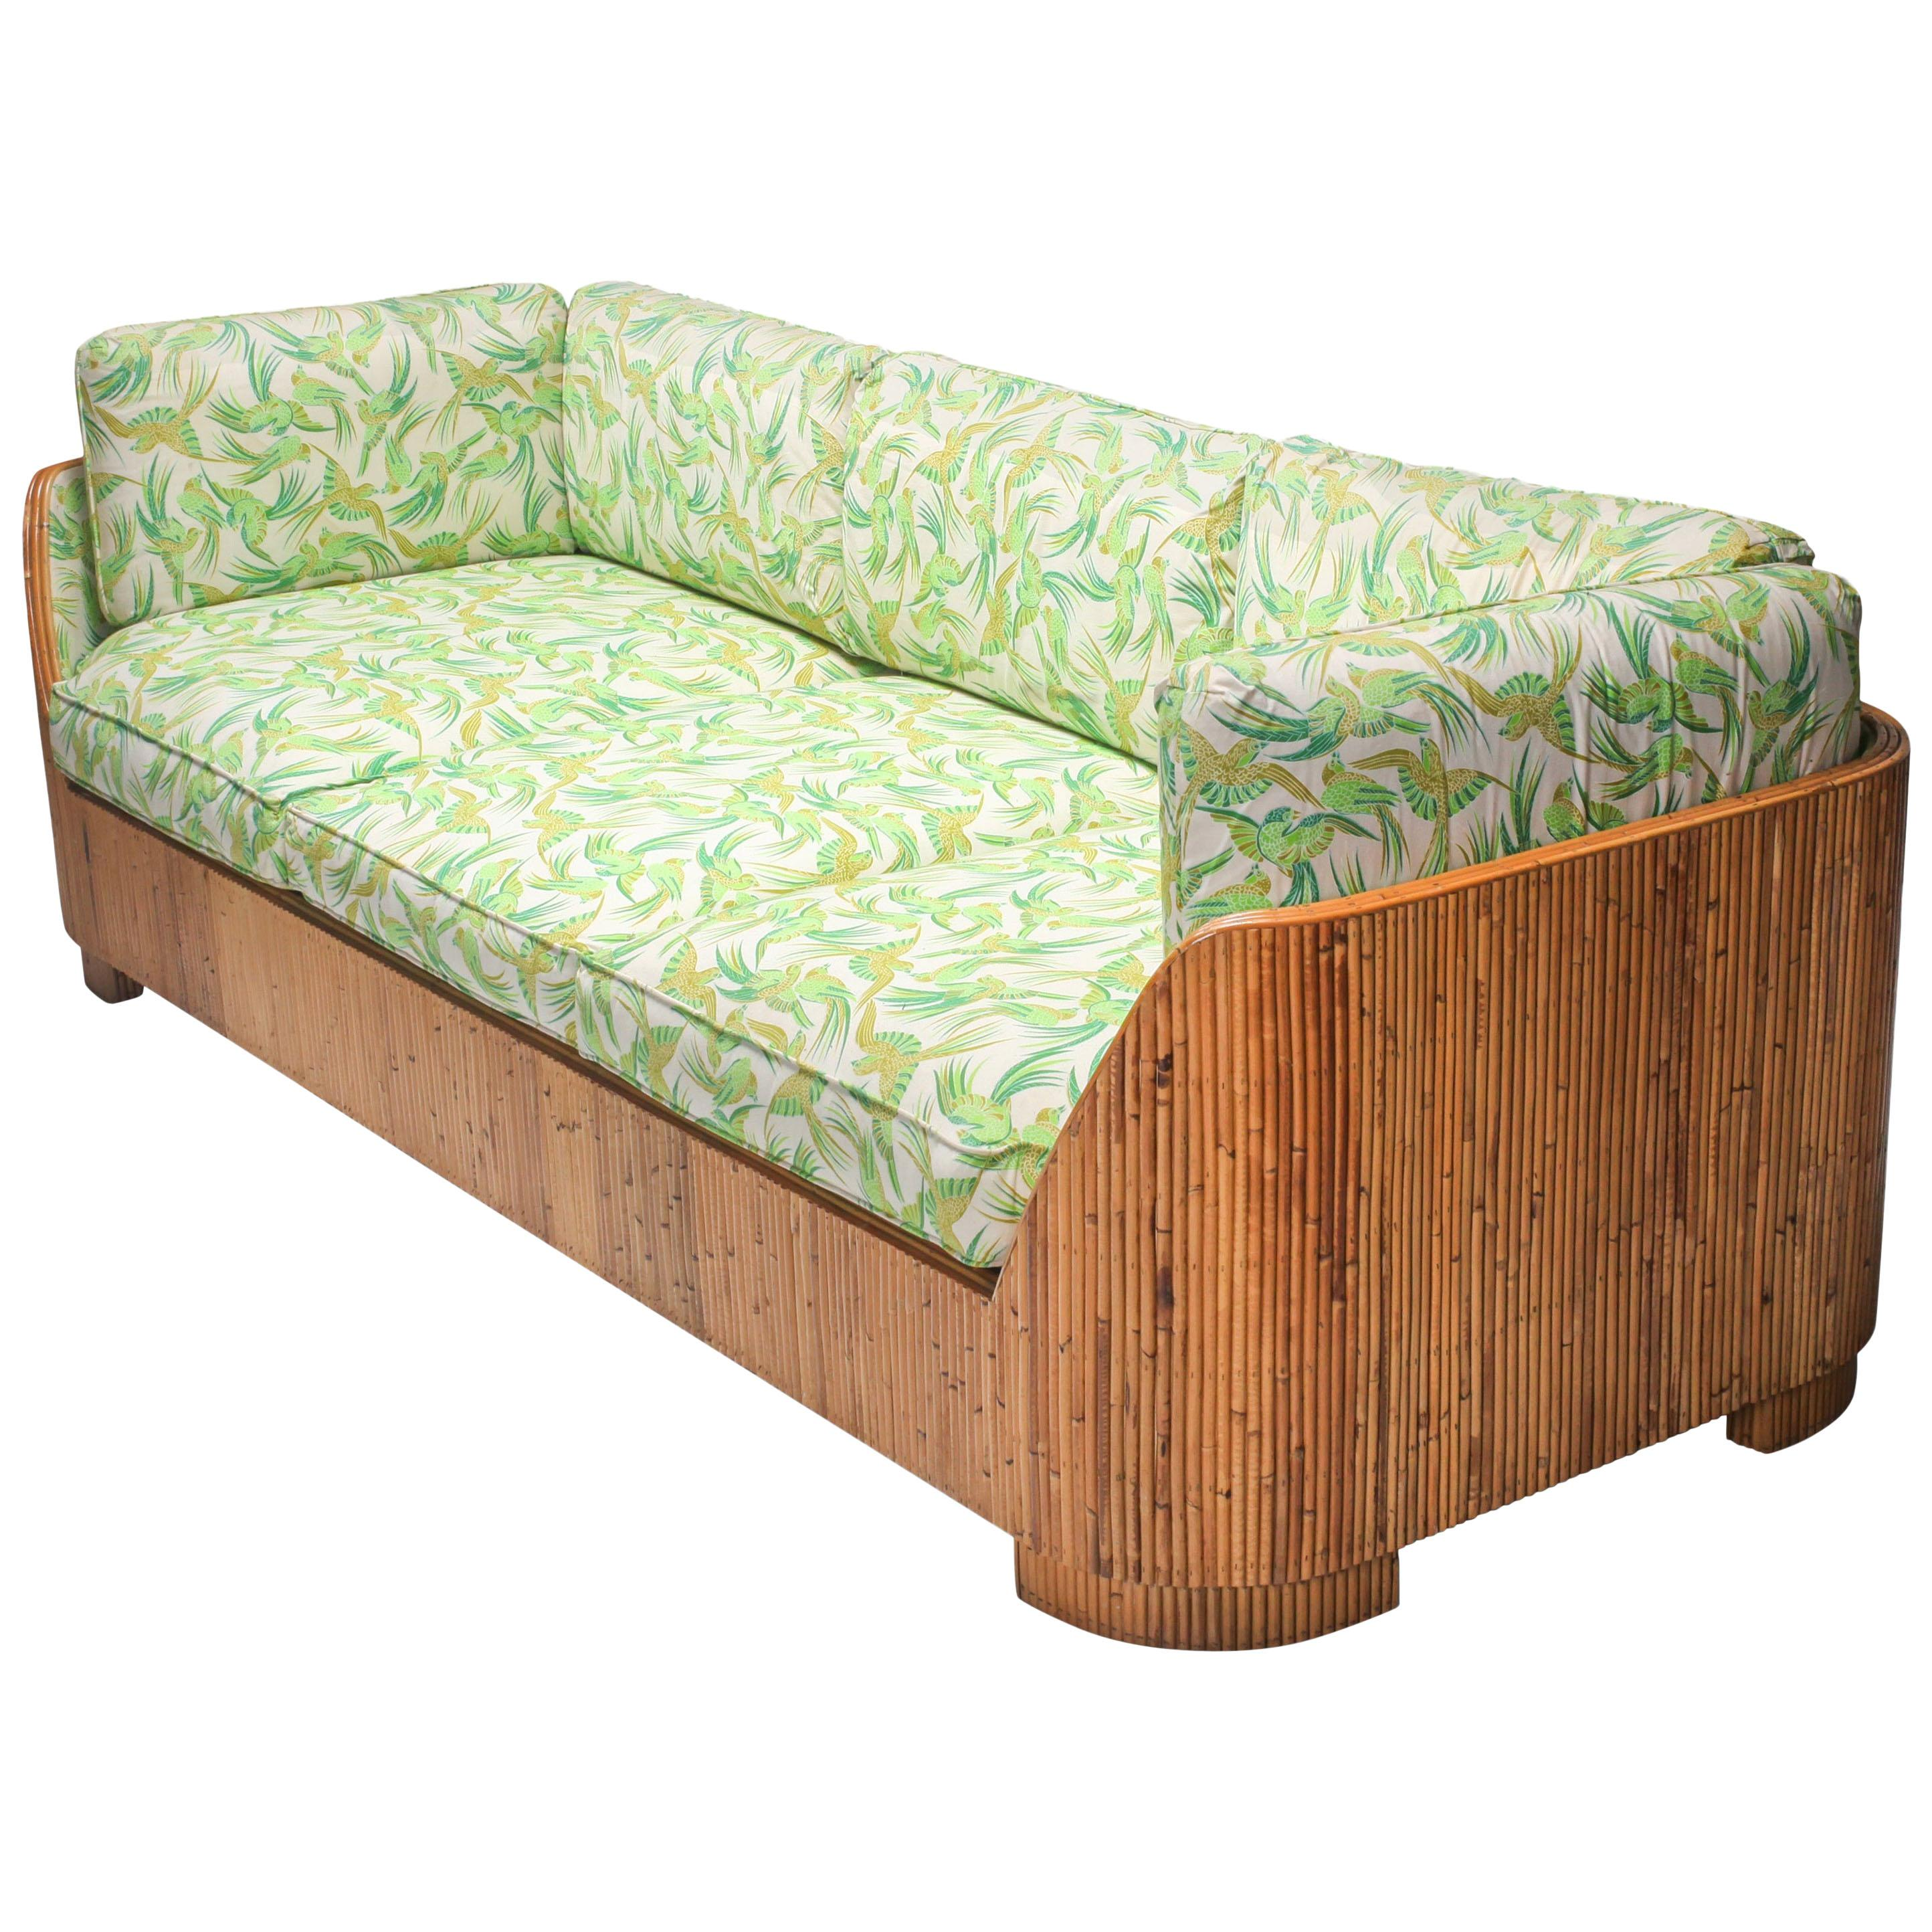 Bamboo Couch by Vivai del Sud